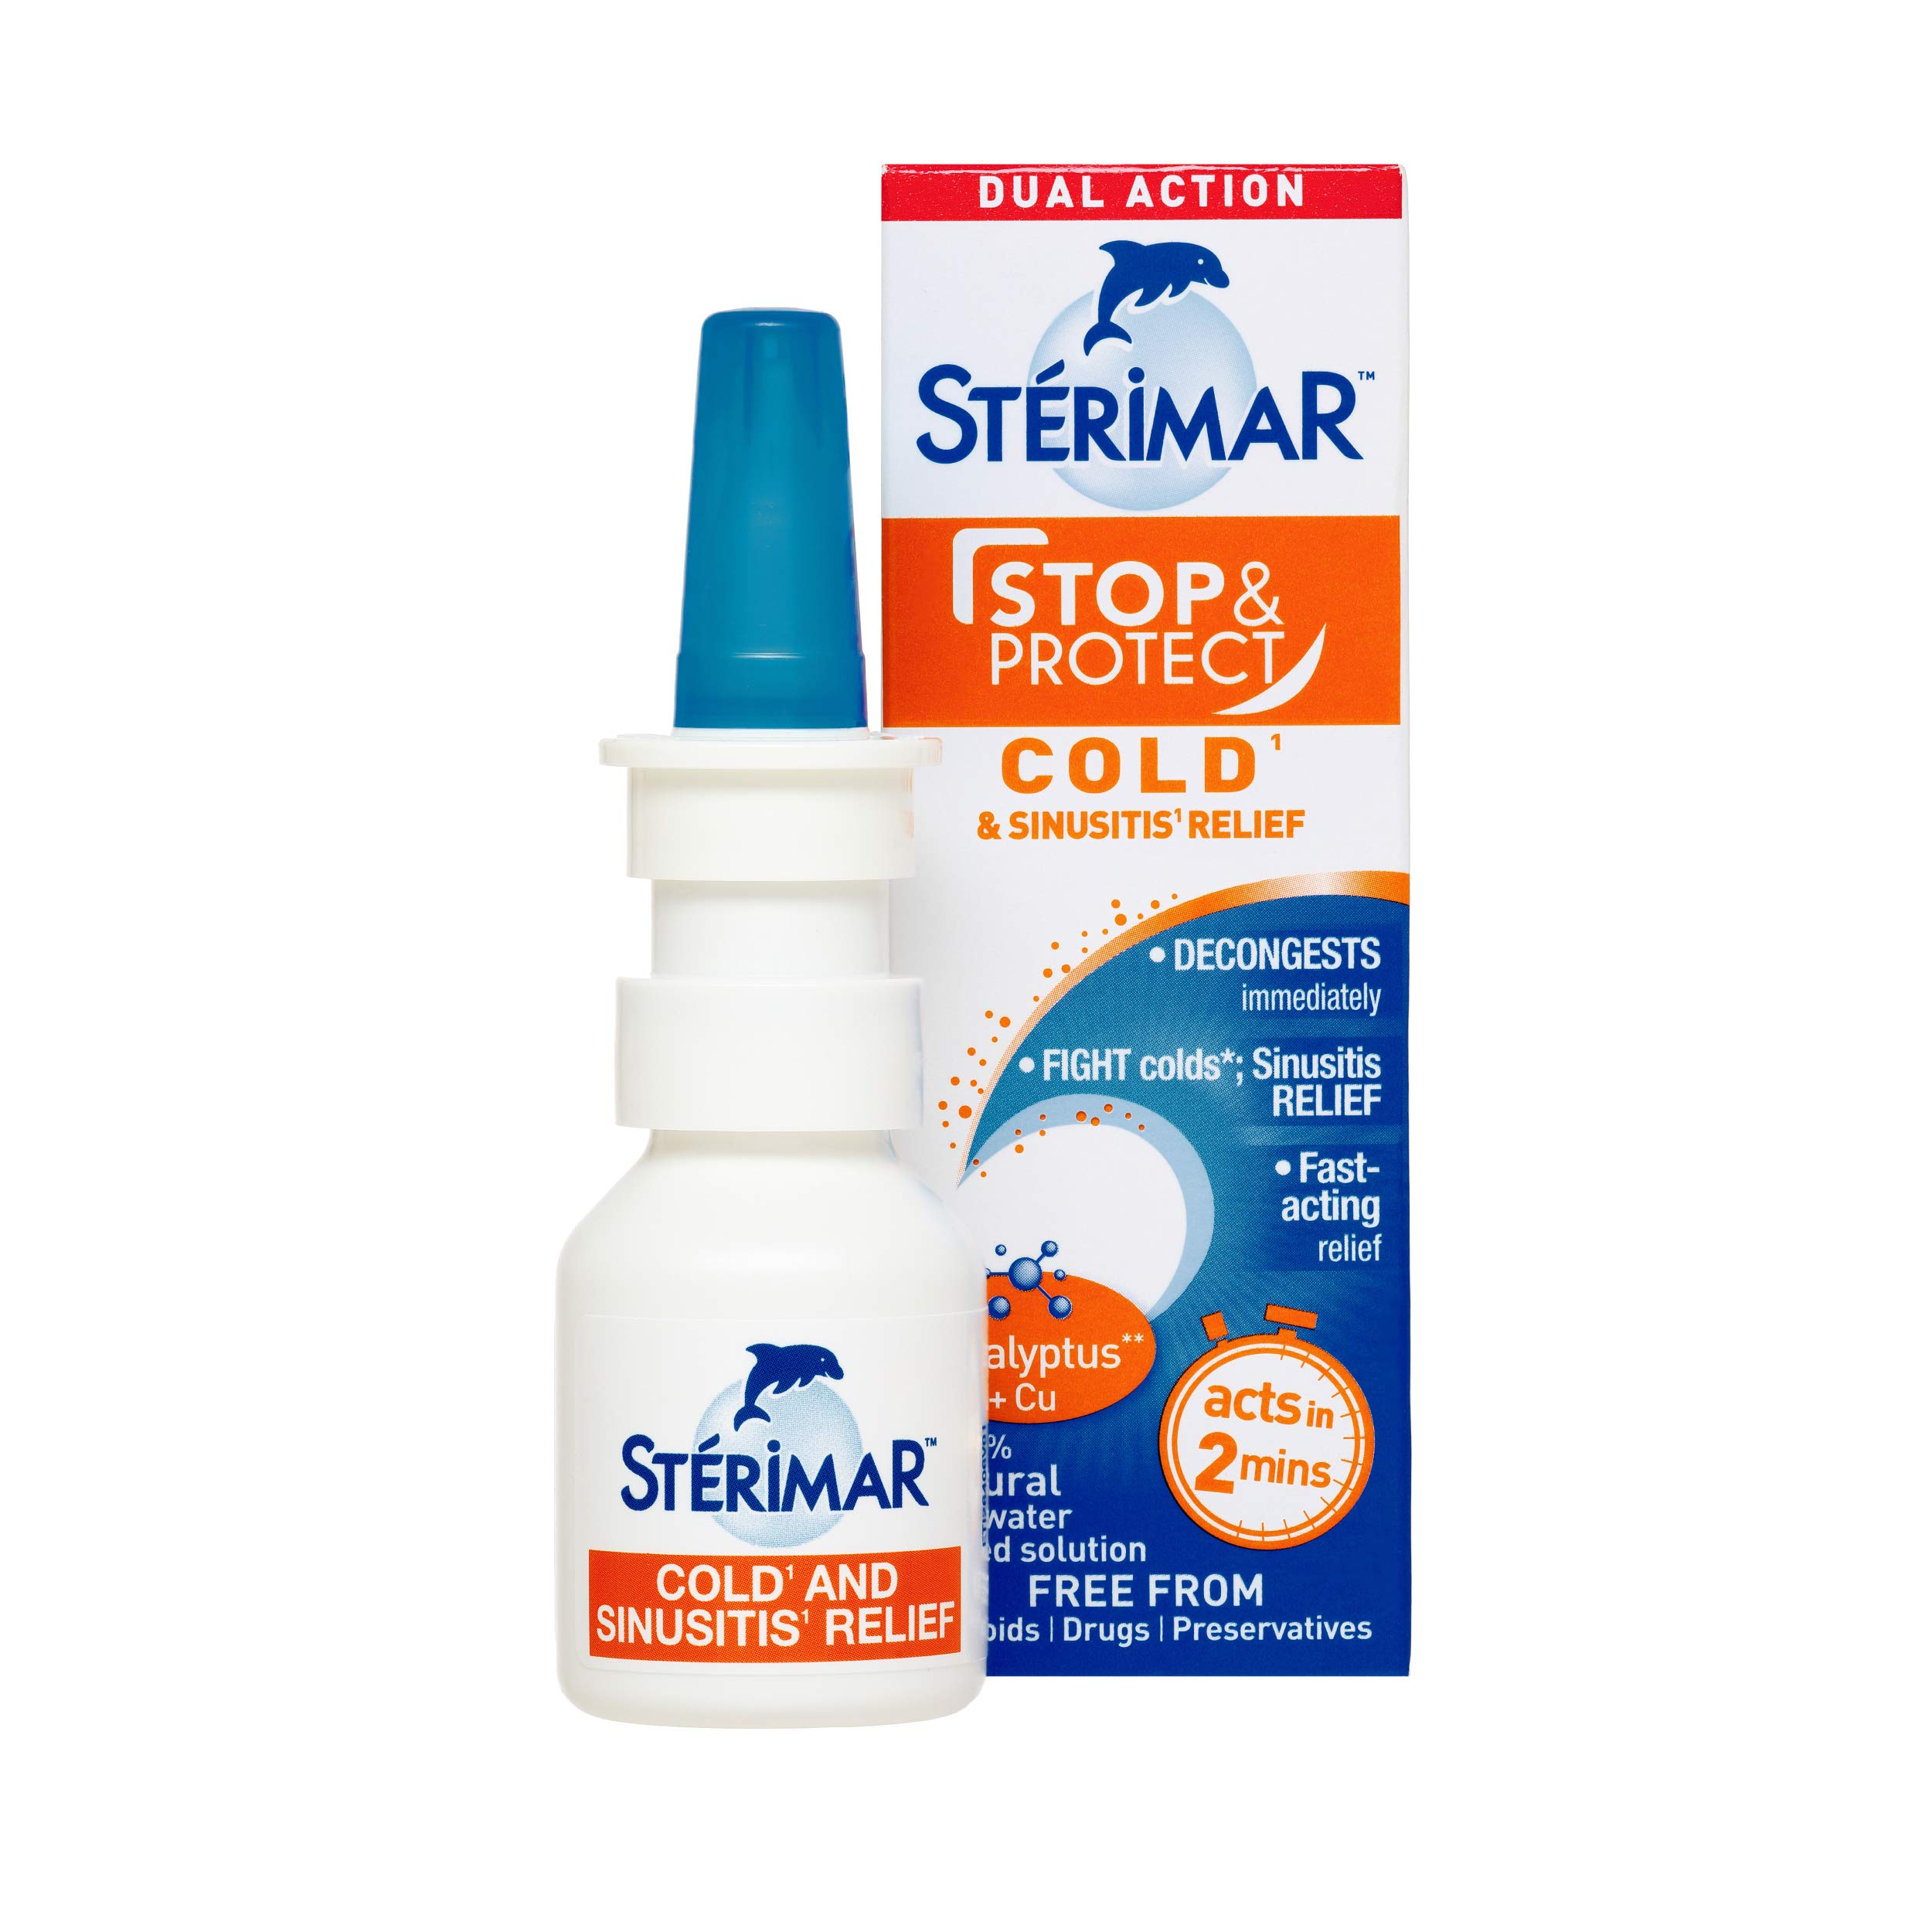 STÉRIMAR Stop & Protect Cold & Sinusitis Relief- 100% Natural Sea Water based Nasal Spray with Added Copper and Eucalyptus - 20 ml Pump